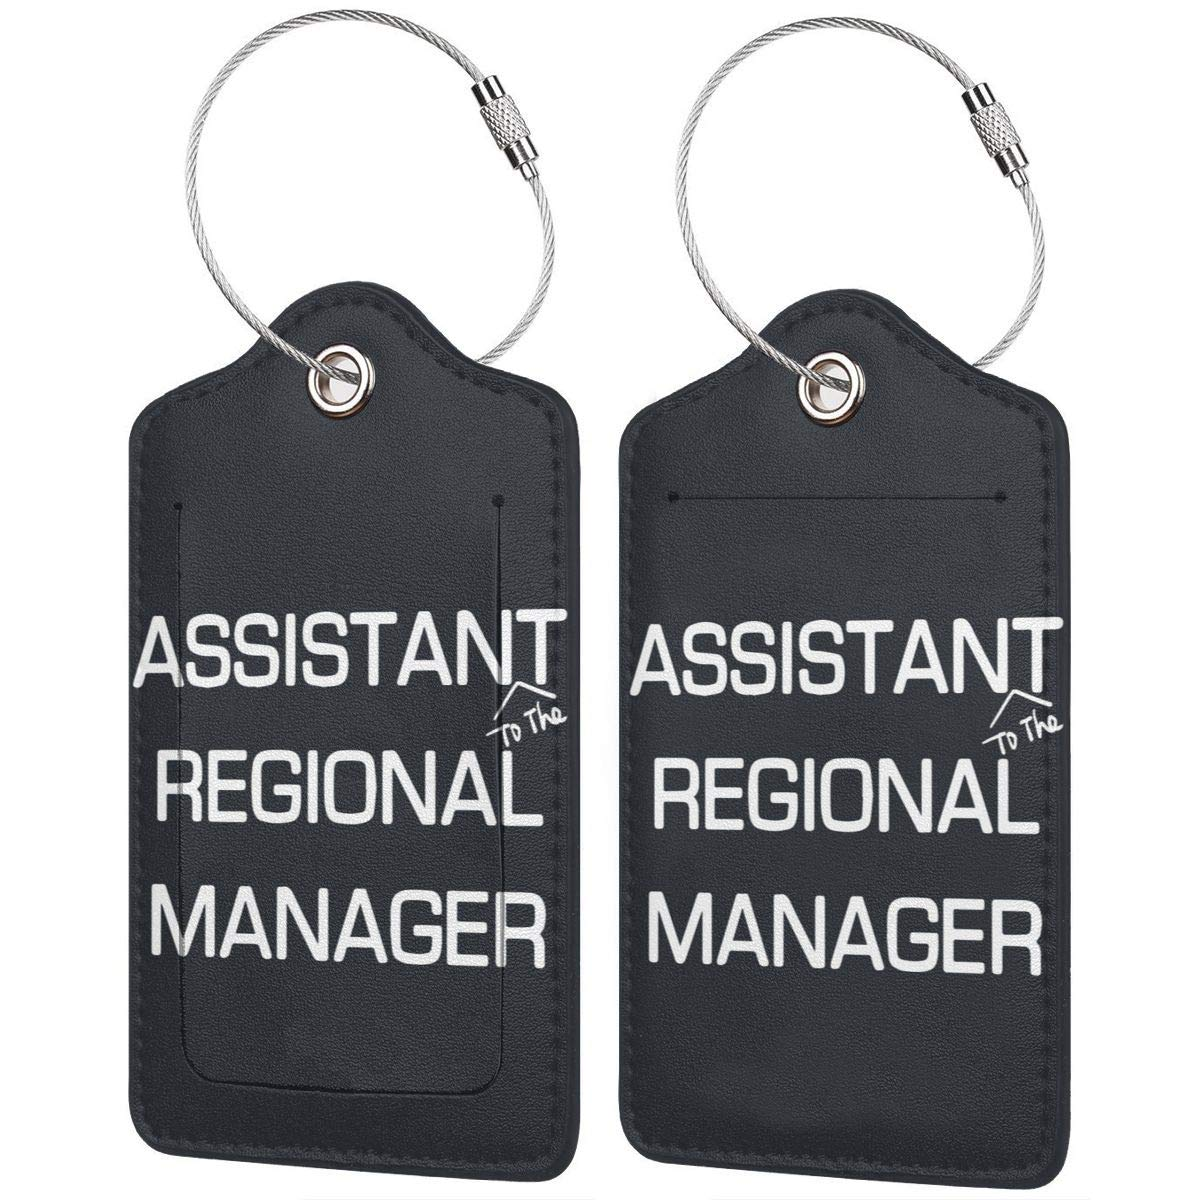 Assistant to The Regional Manager Leather Luggage Tags Suitcase Tag Travel Bag Labels With Privacy Cover For Men Women 2 Pack 4 Pack